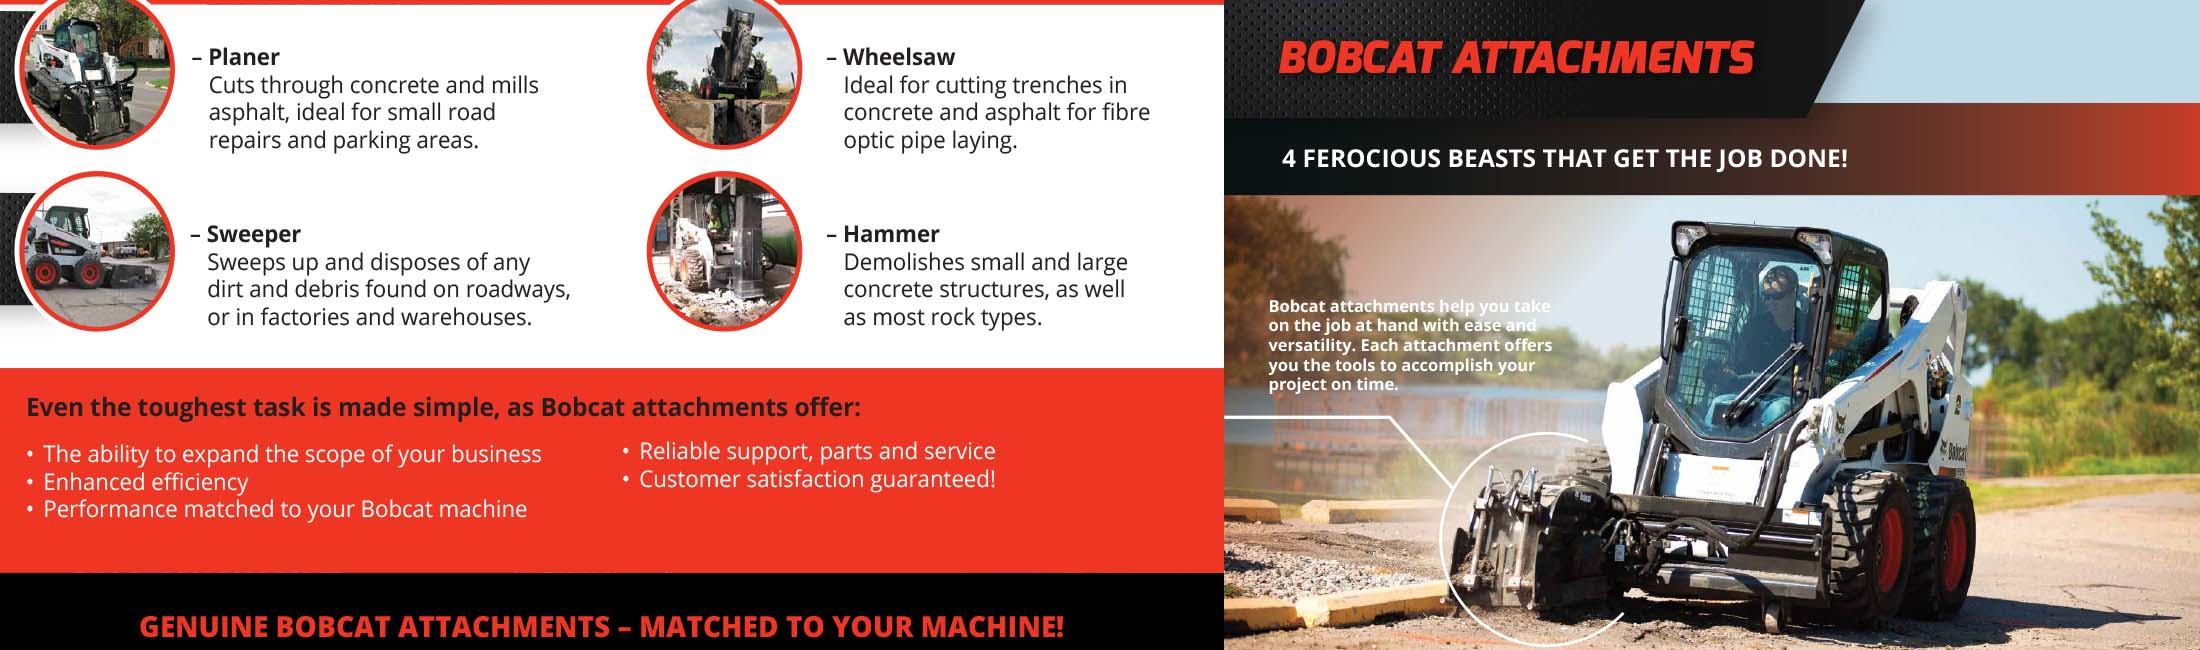 Bobcat Machines for Sale | Bobcat Construction Machines | Bobcat SA